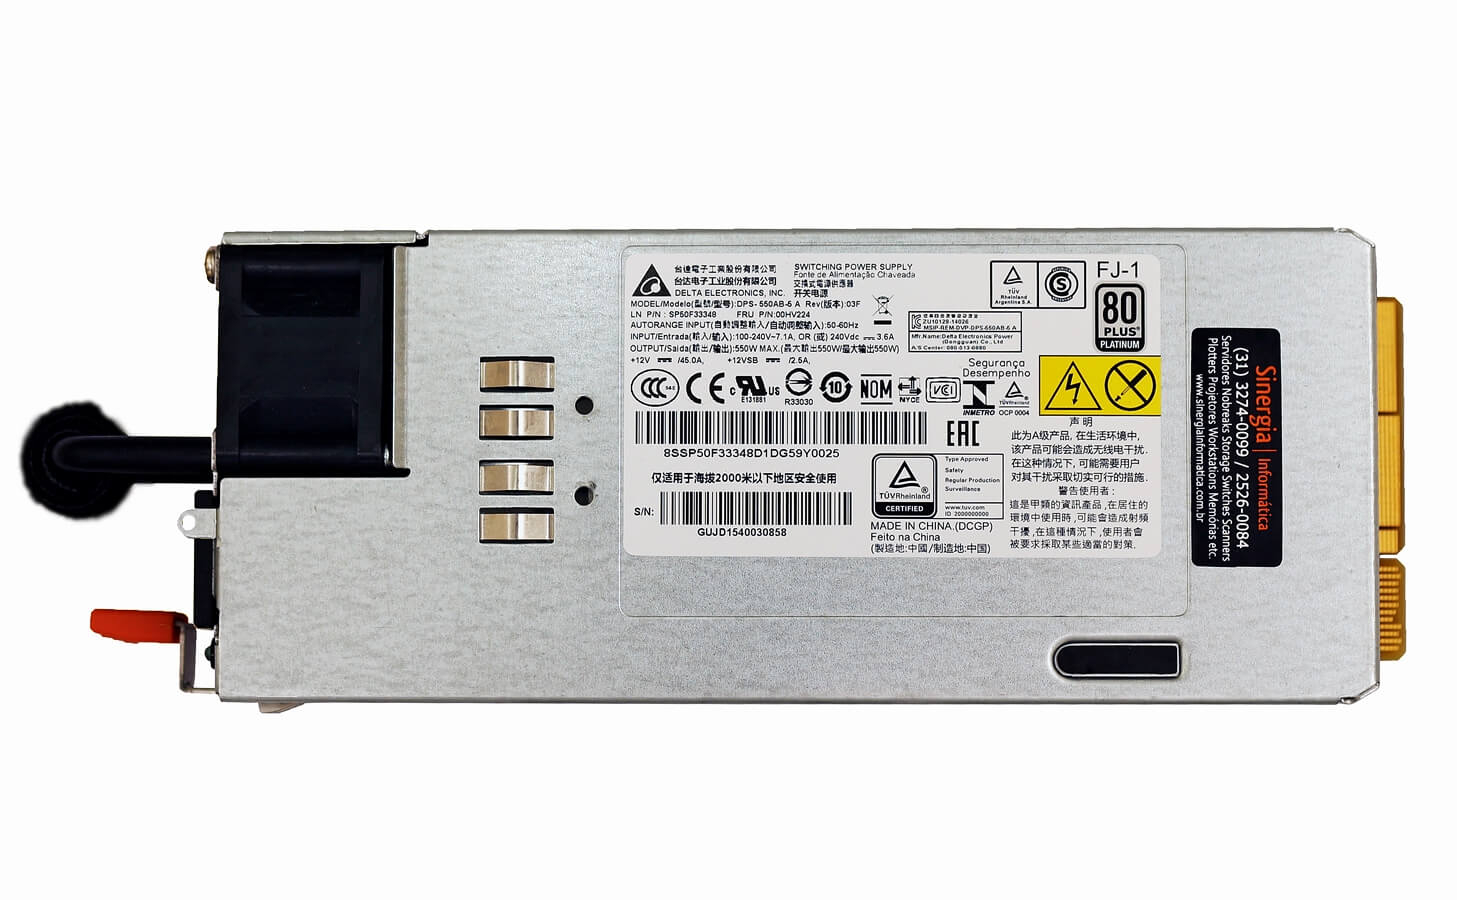 SP50F33348 FONTE REDUNDANTE LENOVO 550W HOT SWAP PARA SERVIDORES THINKSERVER RD450 RD550 RD650 TD350 label